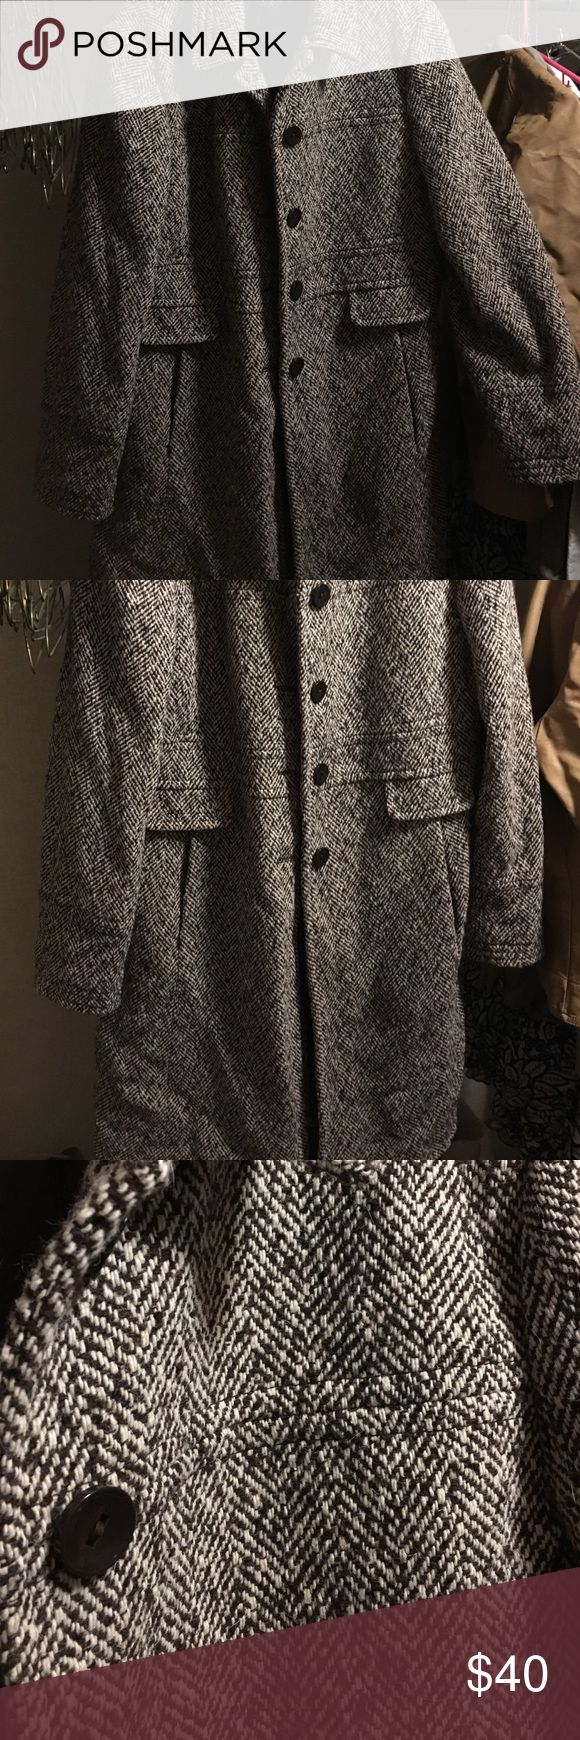 Women's knee length wool coat Women's size 16, brown & cream colored wool dress coat. Great shape, only worn about 5 times Larry Levine Jackets & Coats Pea Coats